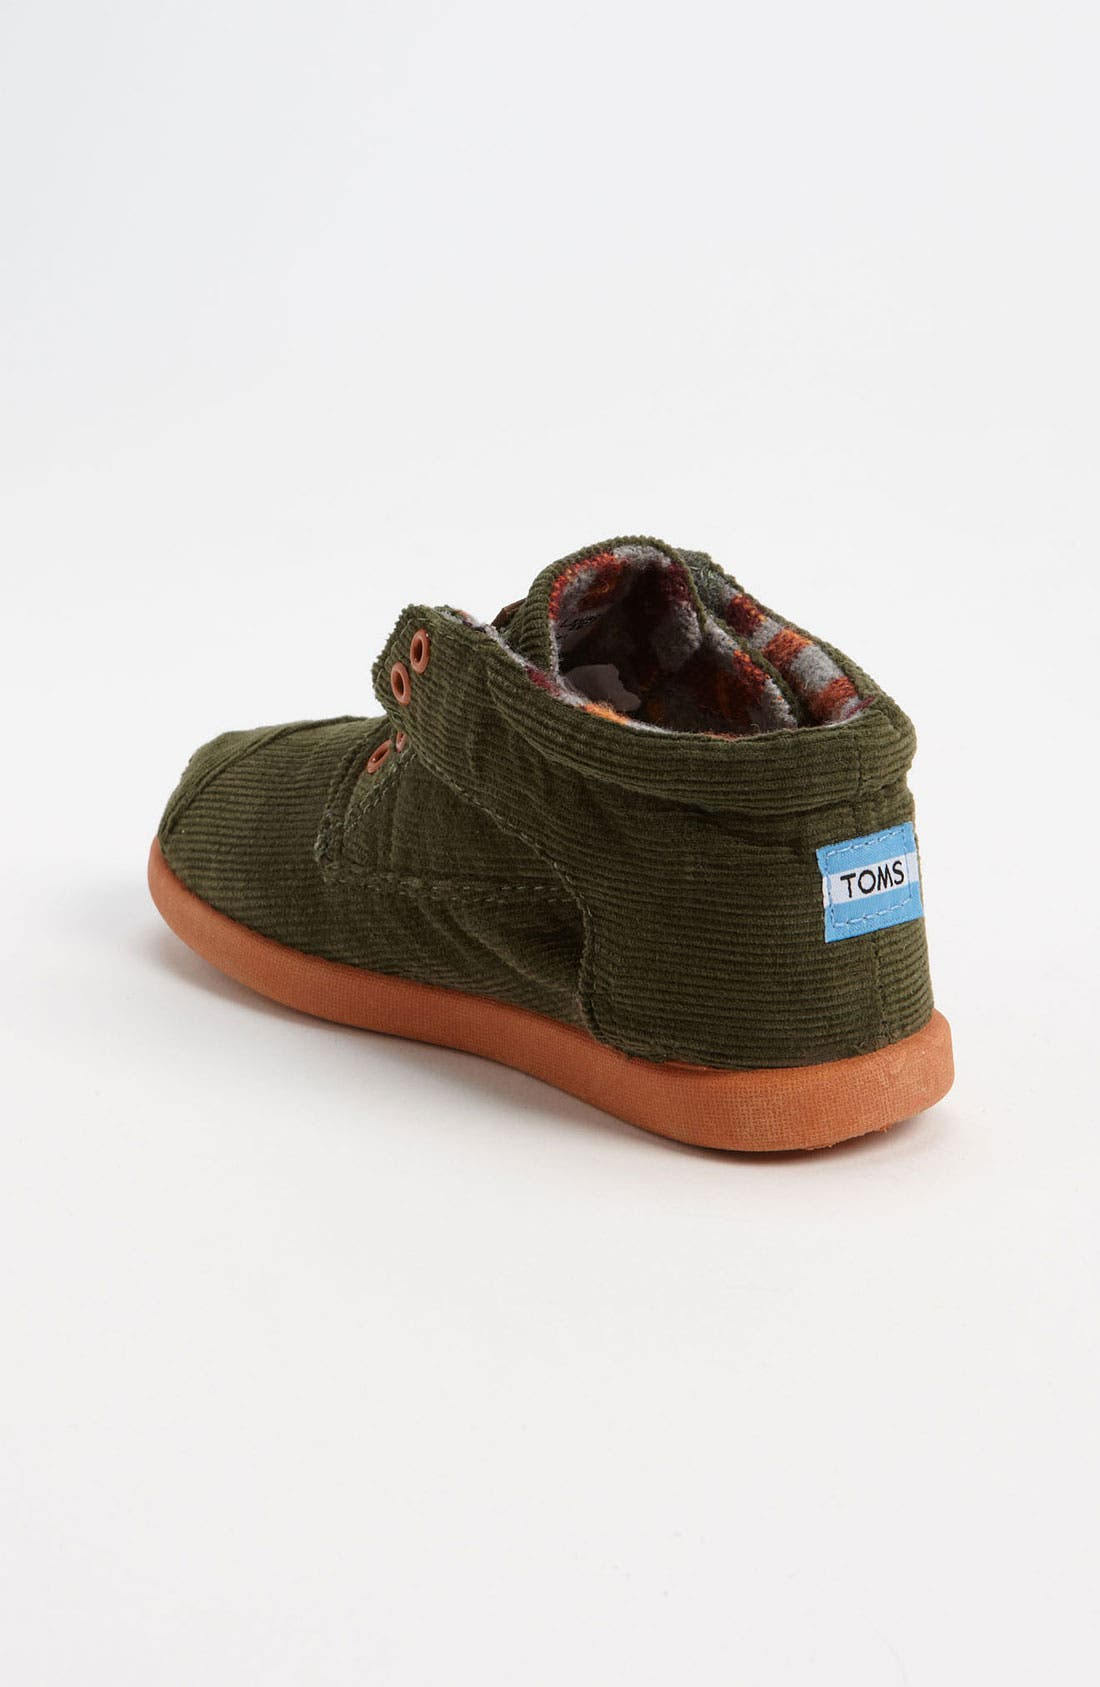 Alternate Image 2  - TOMS 'Botas' Corduroy Boot (Baby, Walker & Toddler)